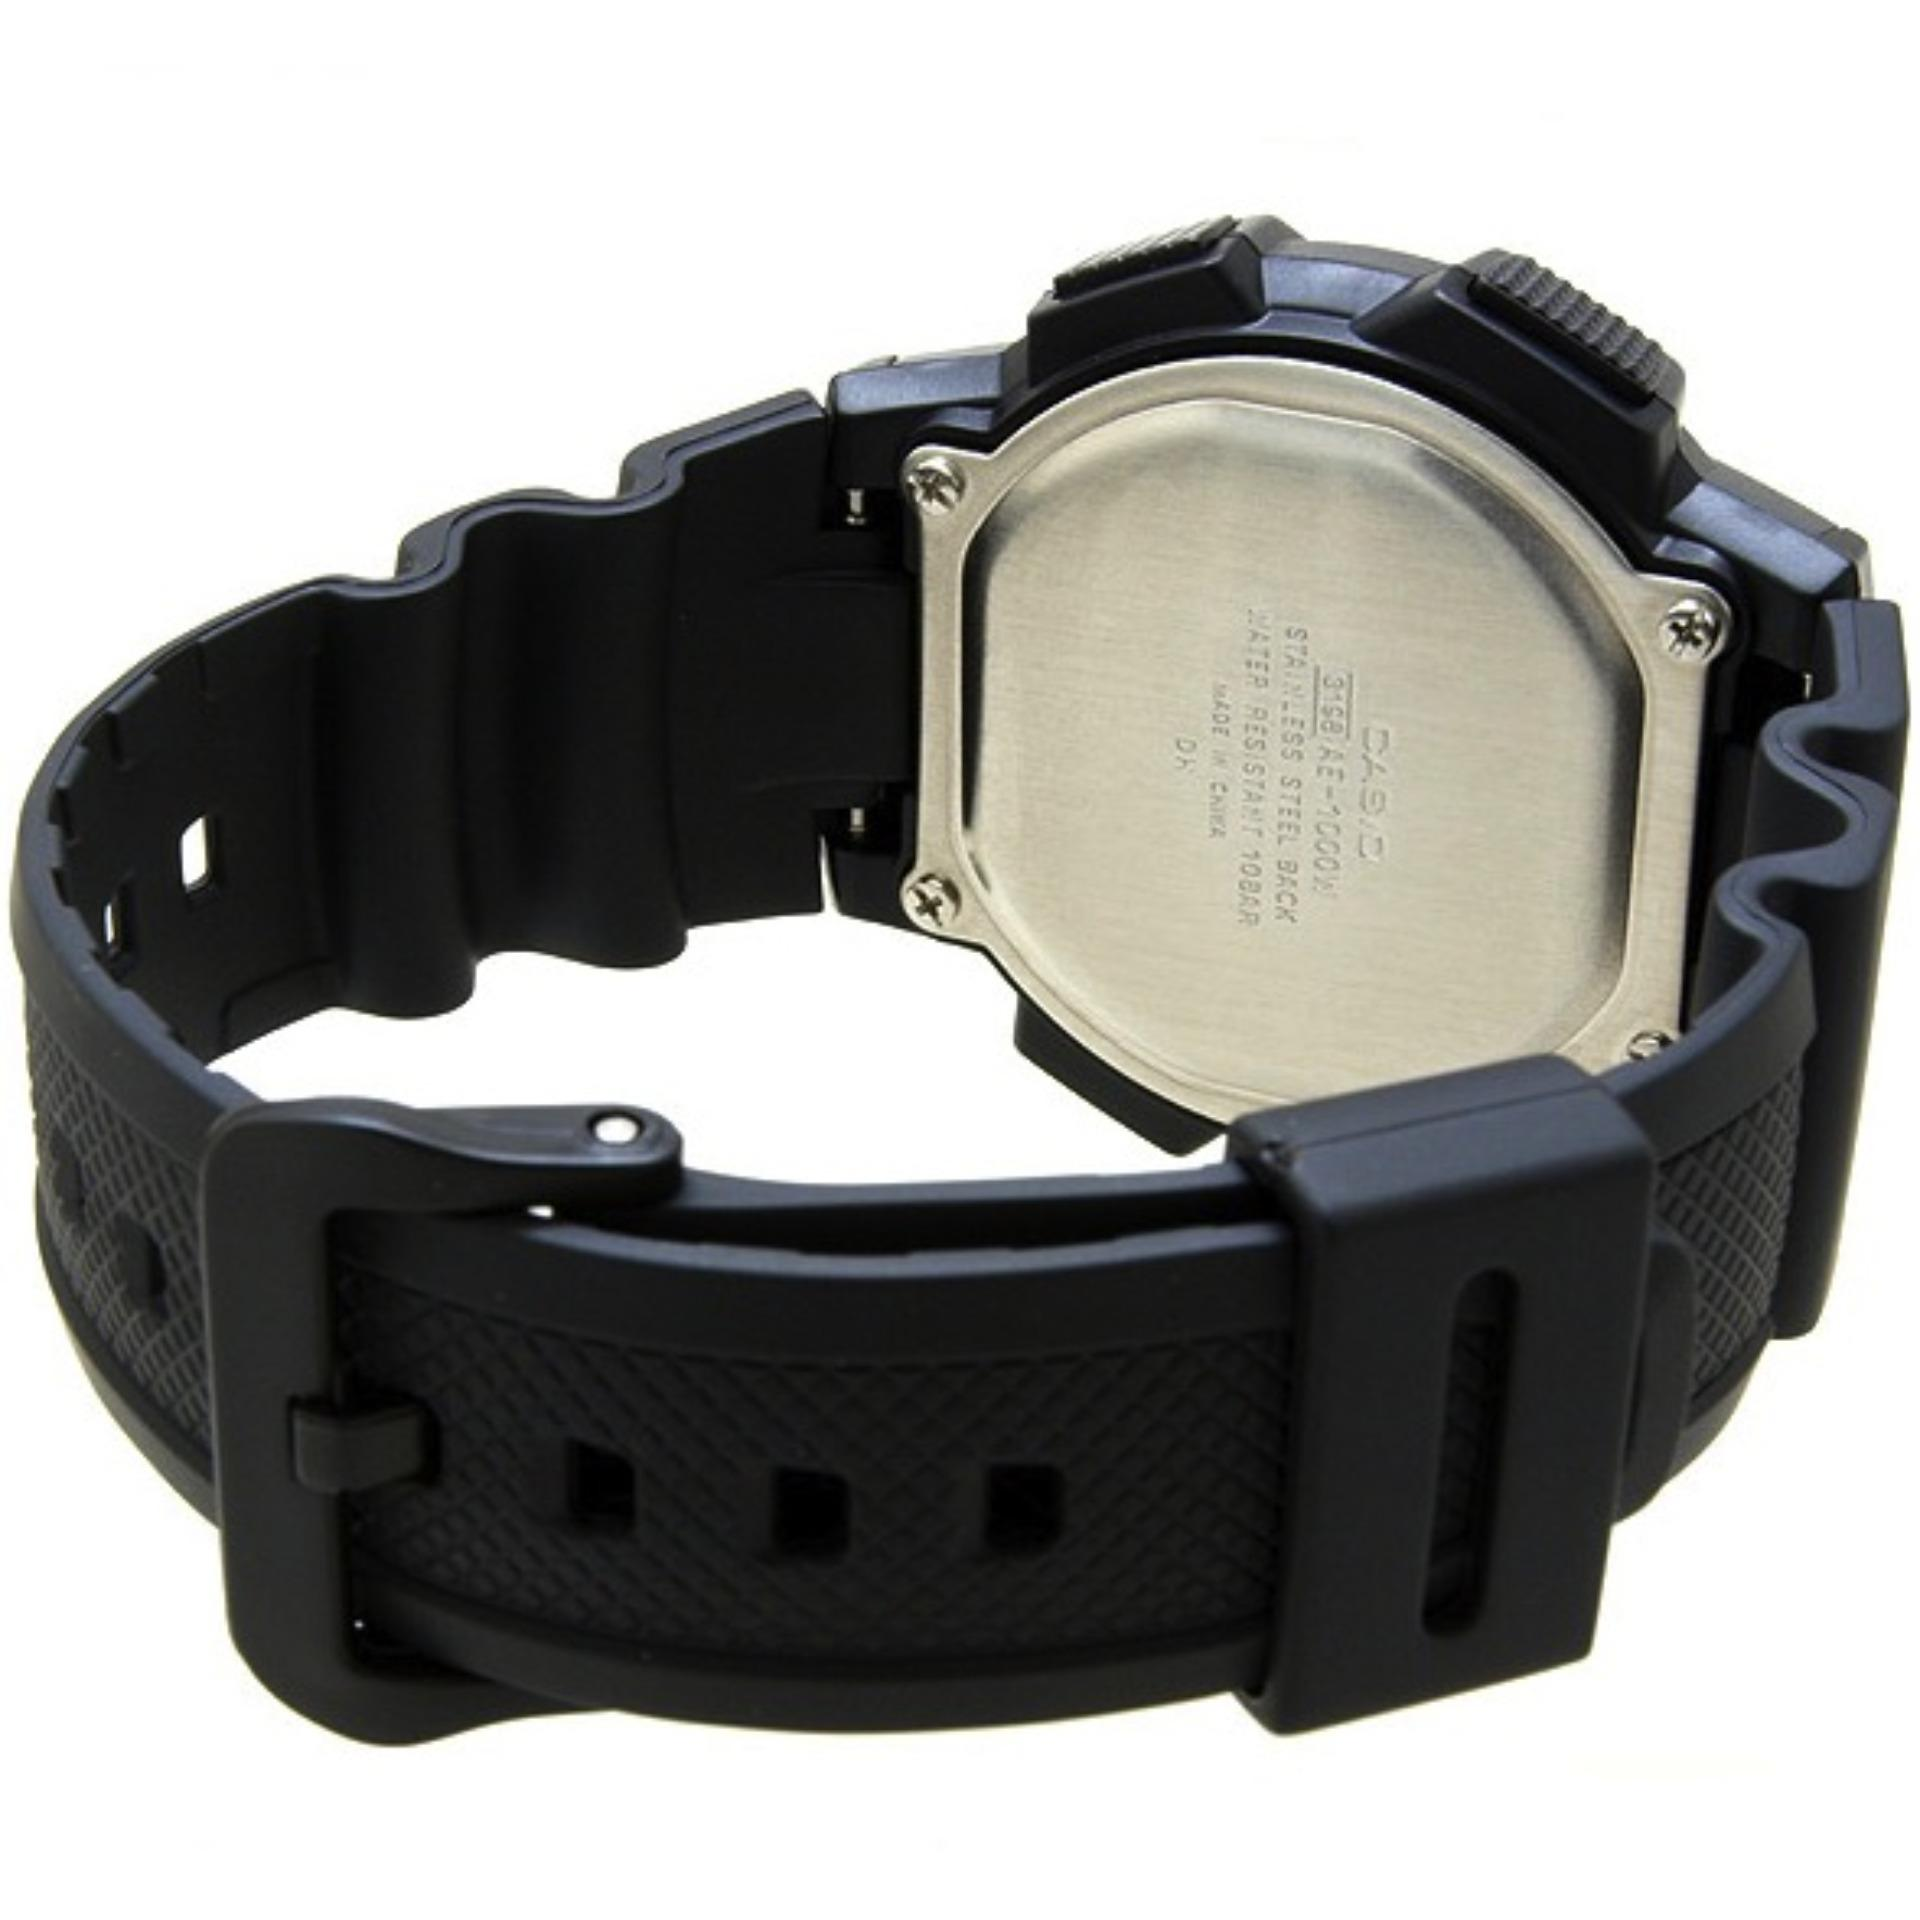 ... CASIO Illuminator AE-1000W - Jam Tangan Pria - Tali Karet - Digital  Movement Promo 09502a14ff